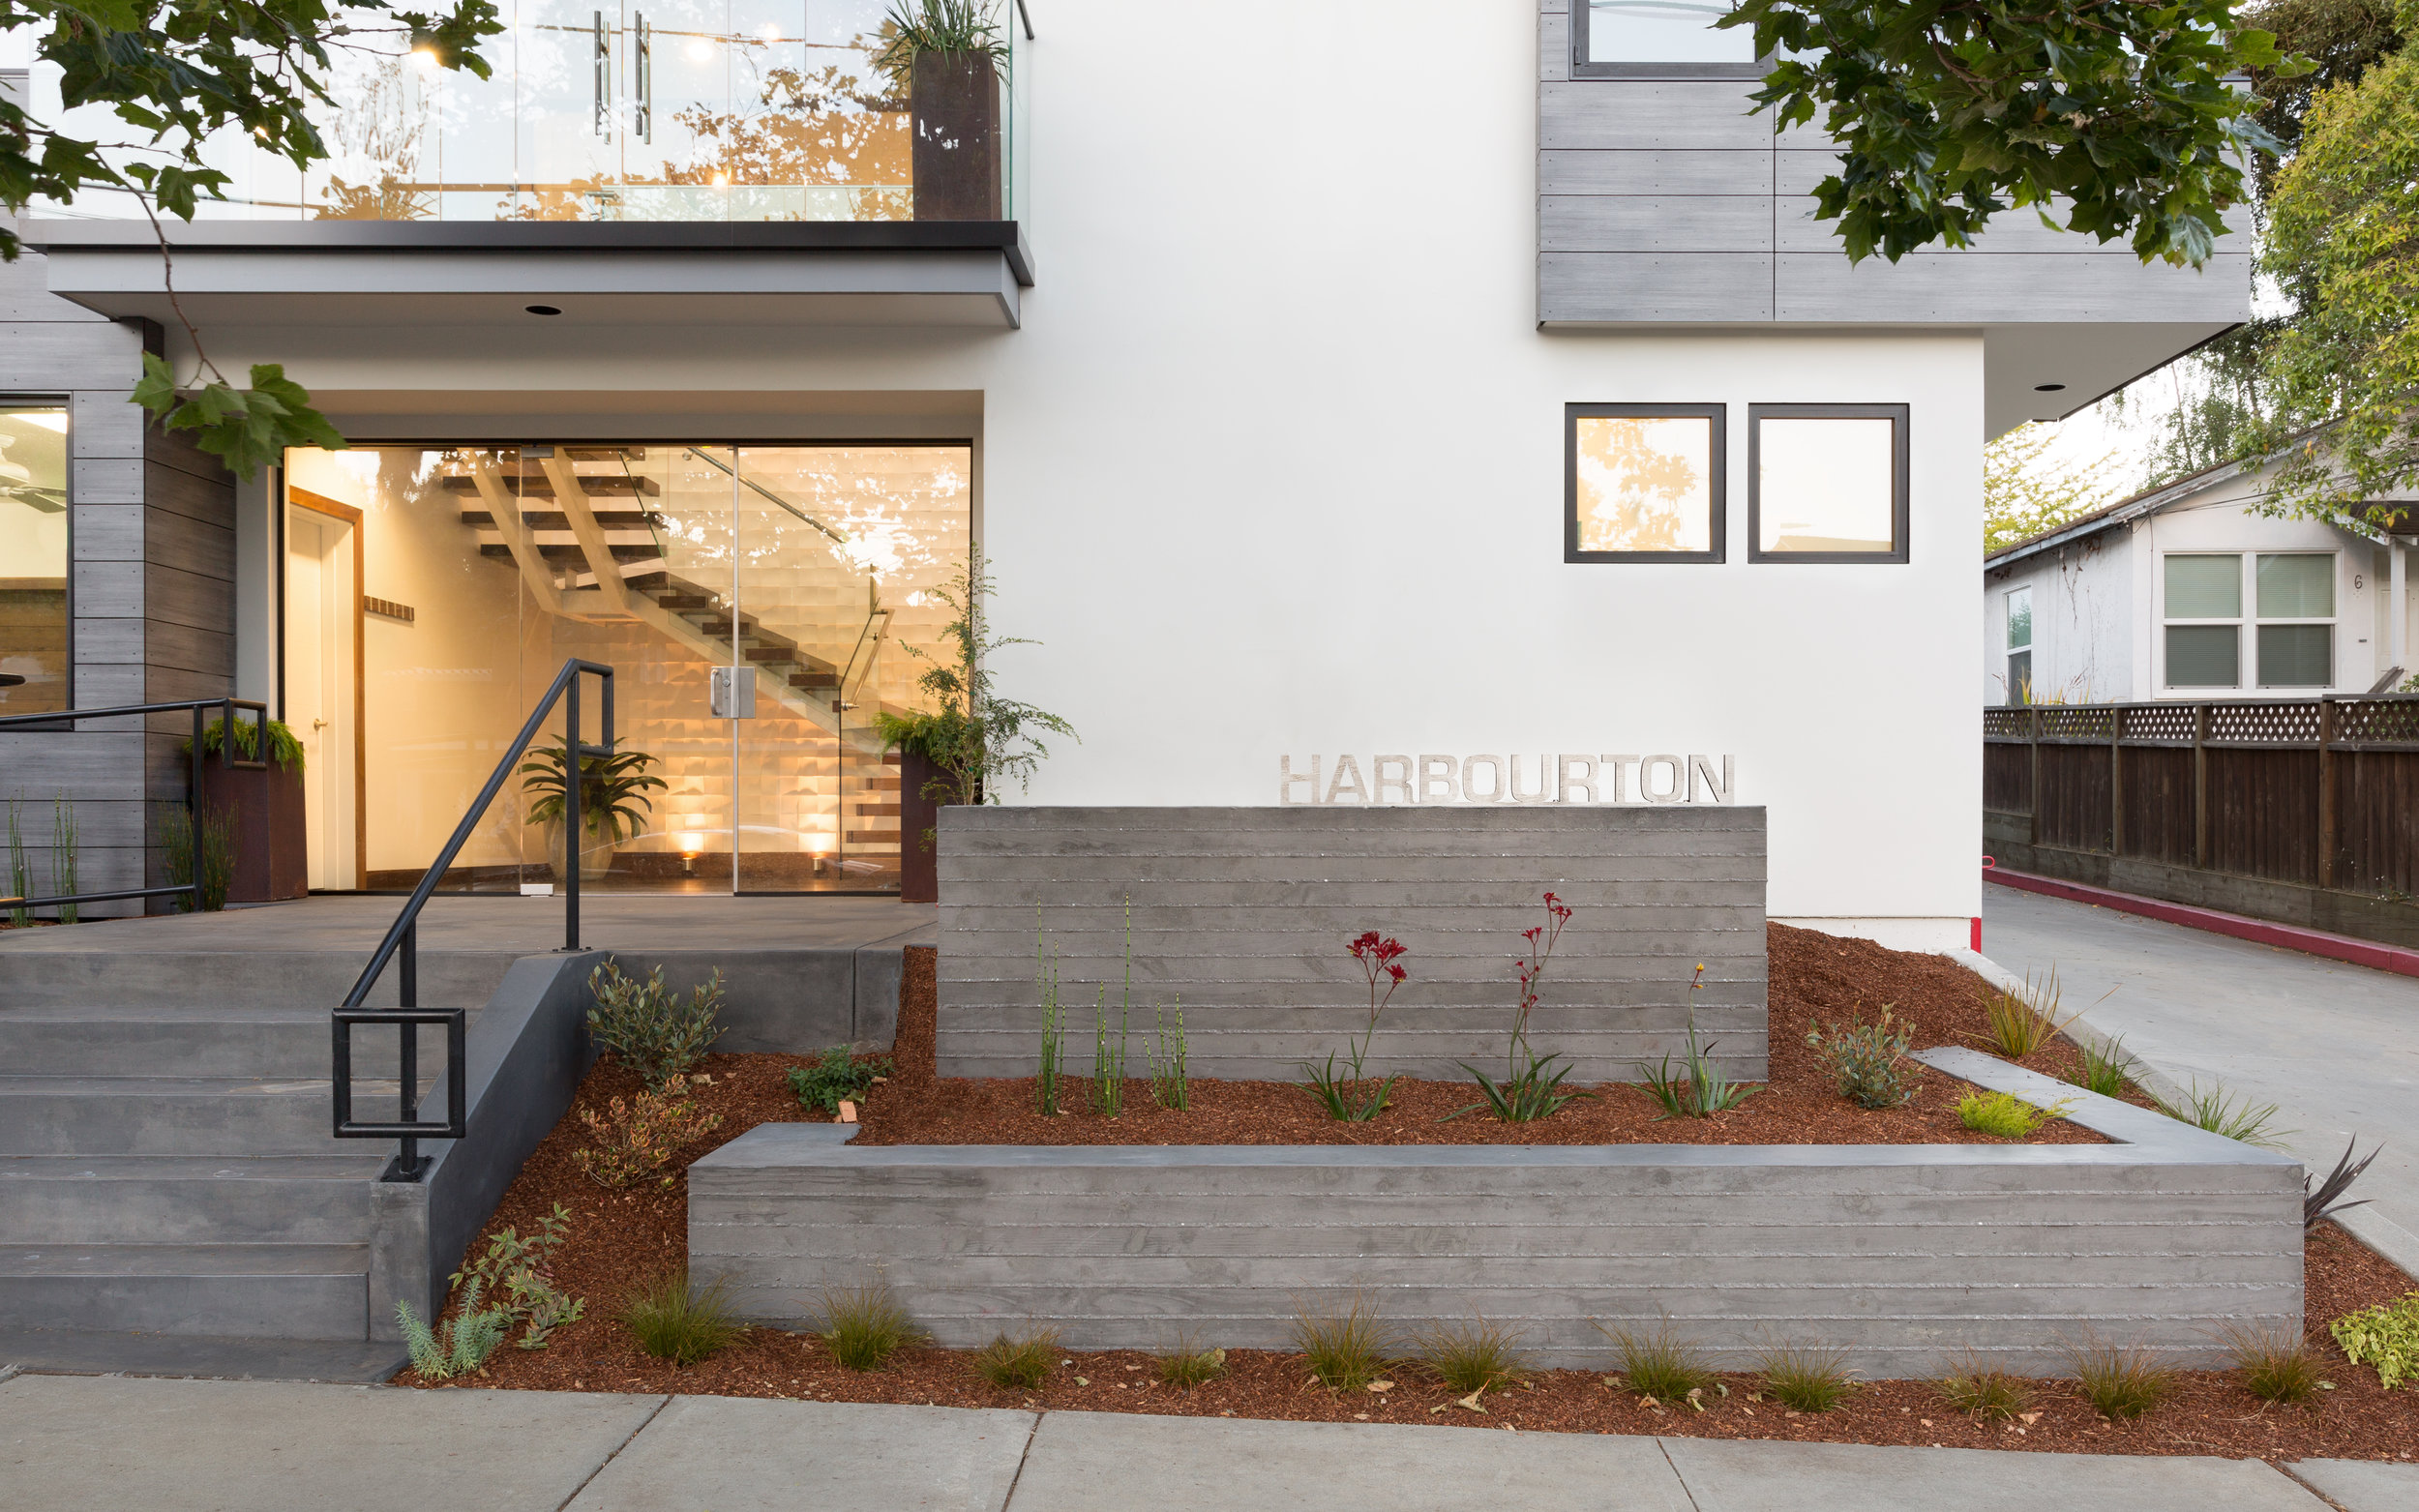 Commercial Office Exterior in Capitola, California